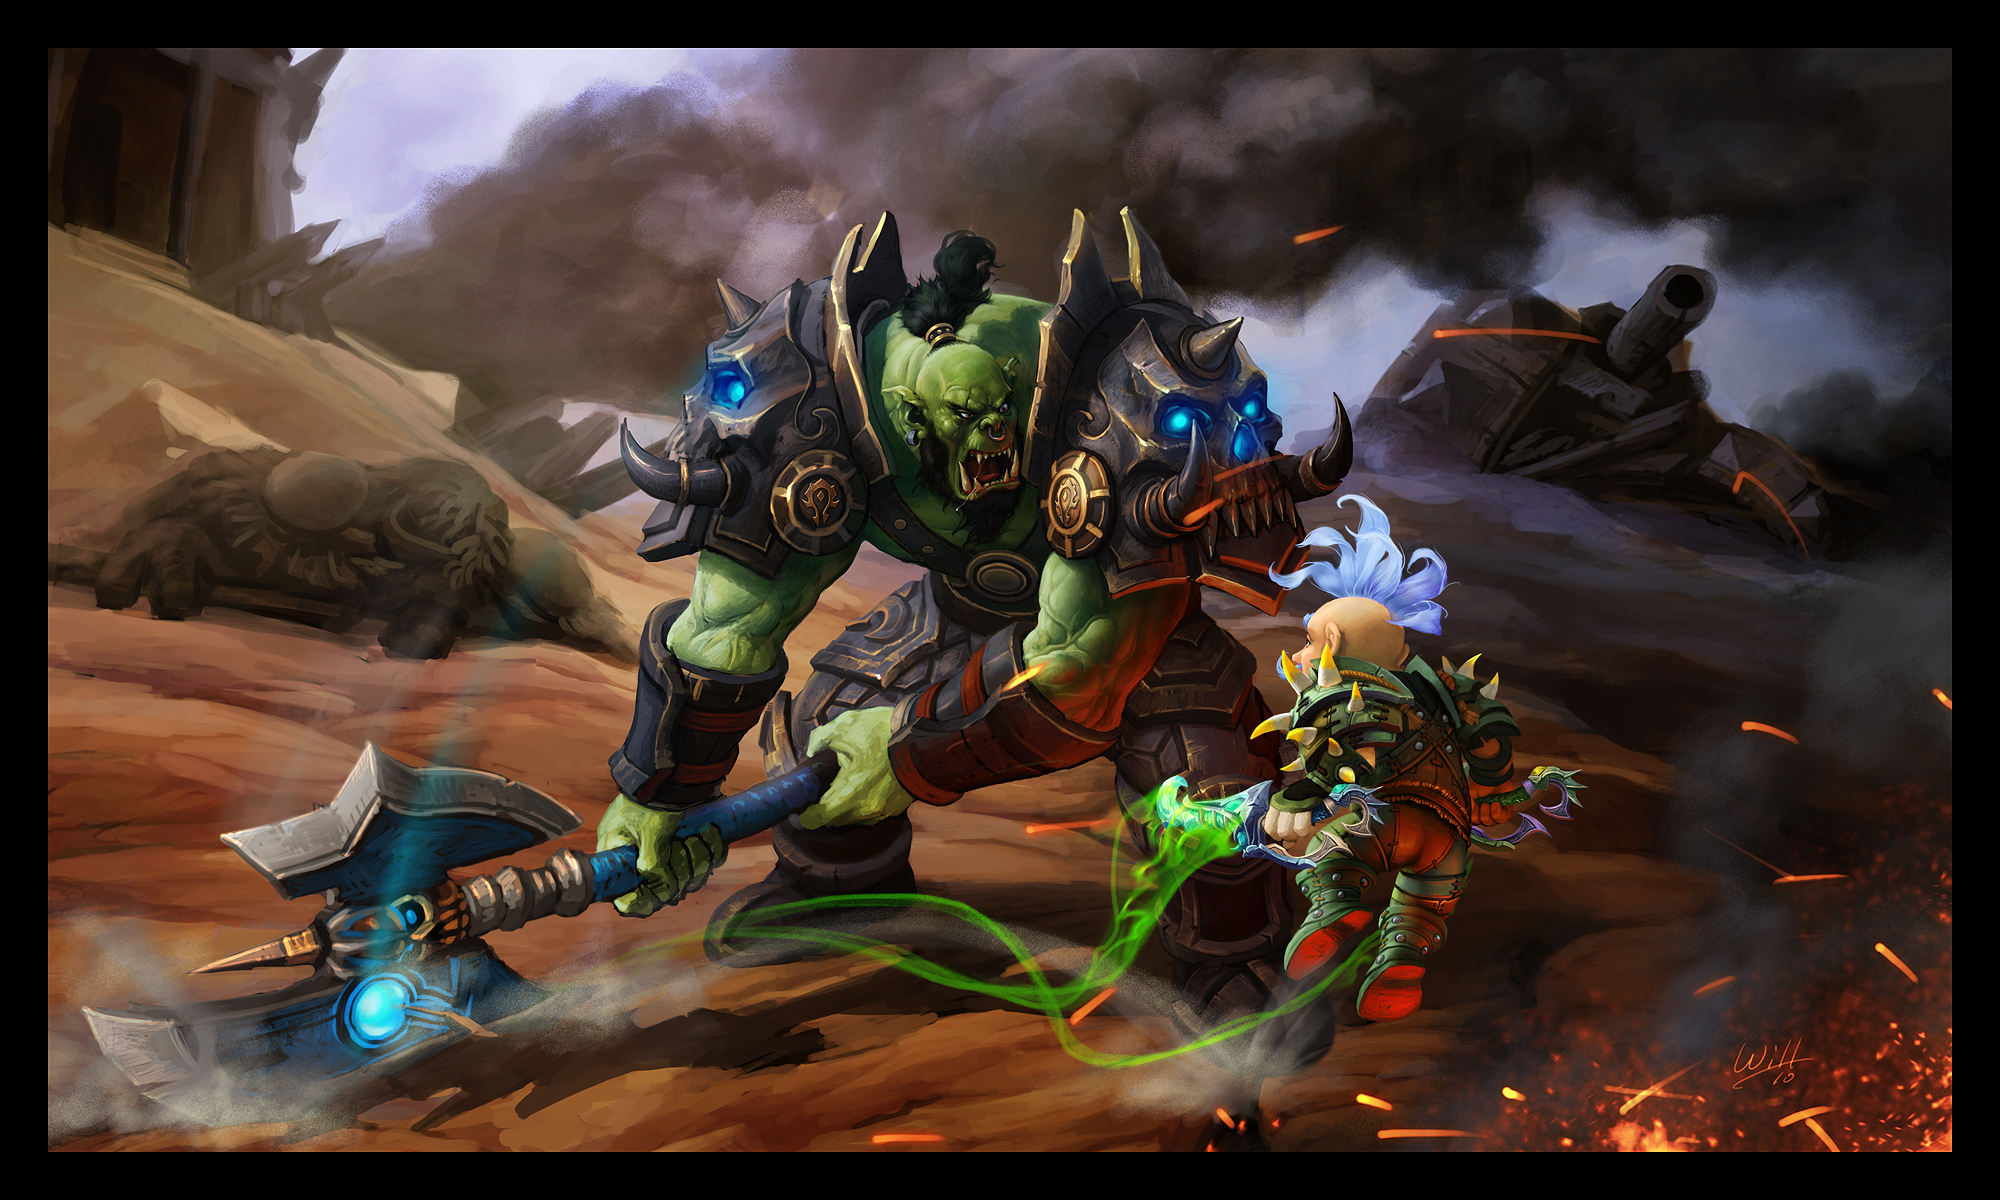 World of warcraft cataclysm orc speach porn image